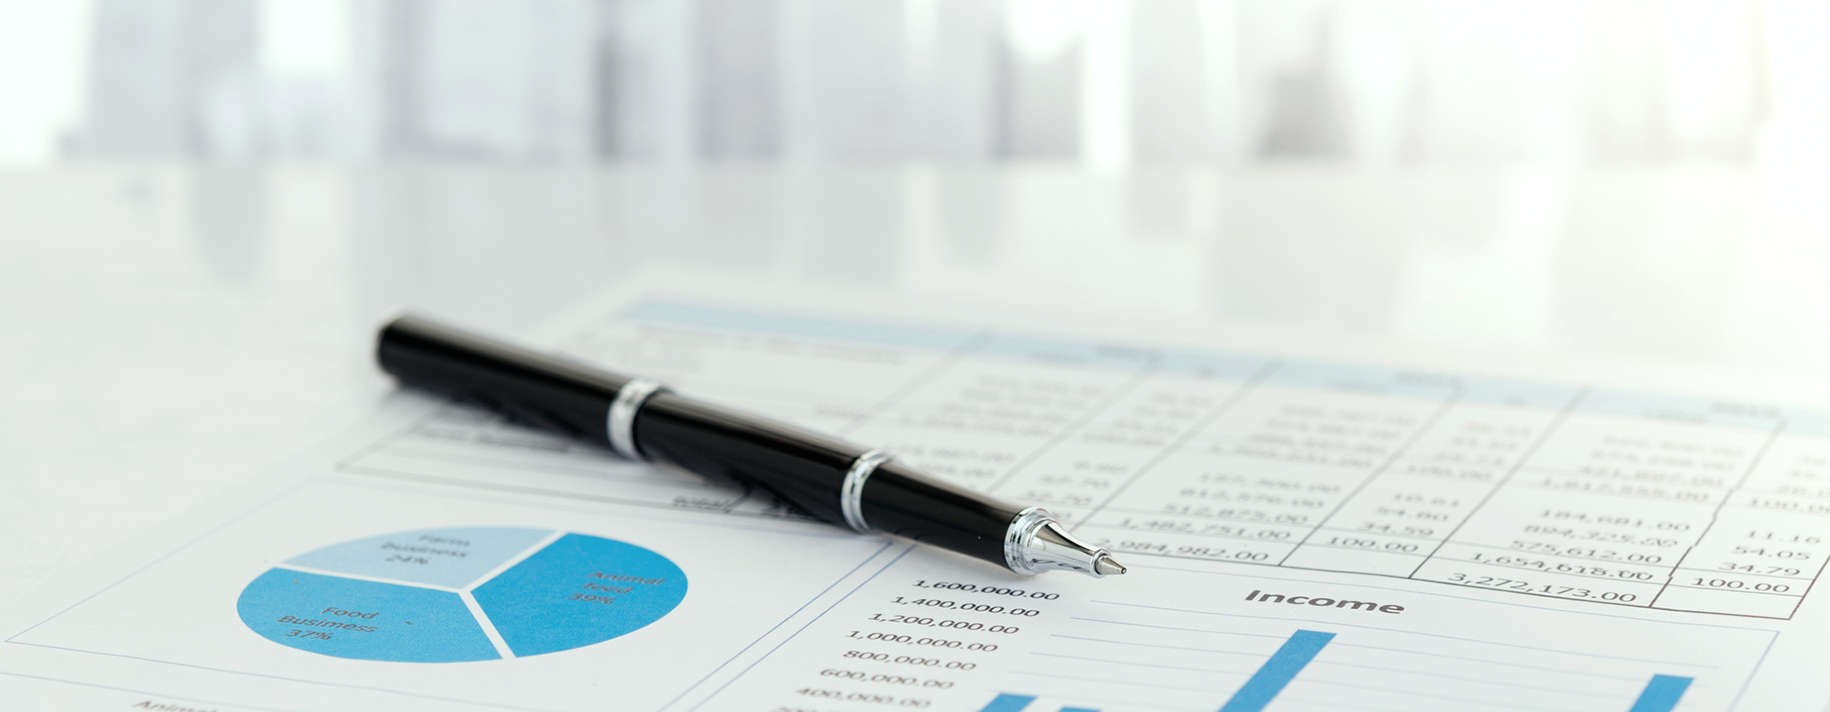 Pen on financial report. Concept of Financial, Data Analysis, Investment Planning, Business Analytics.